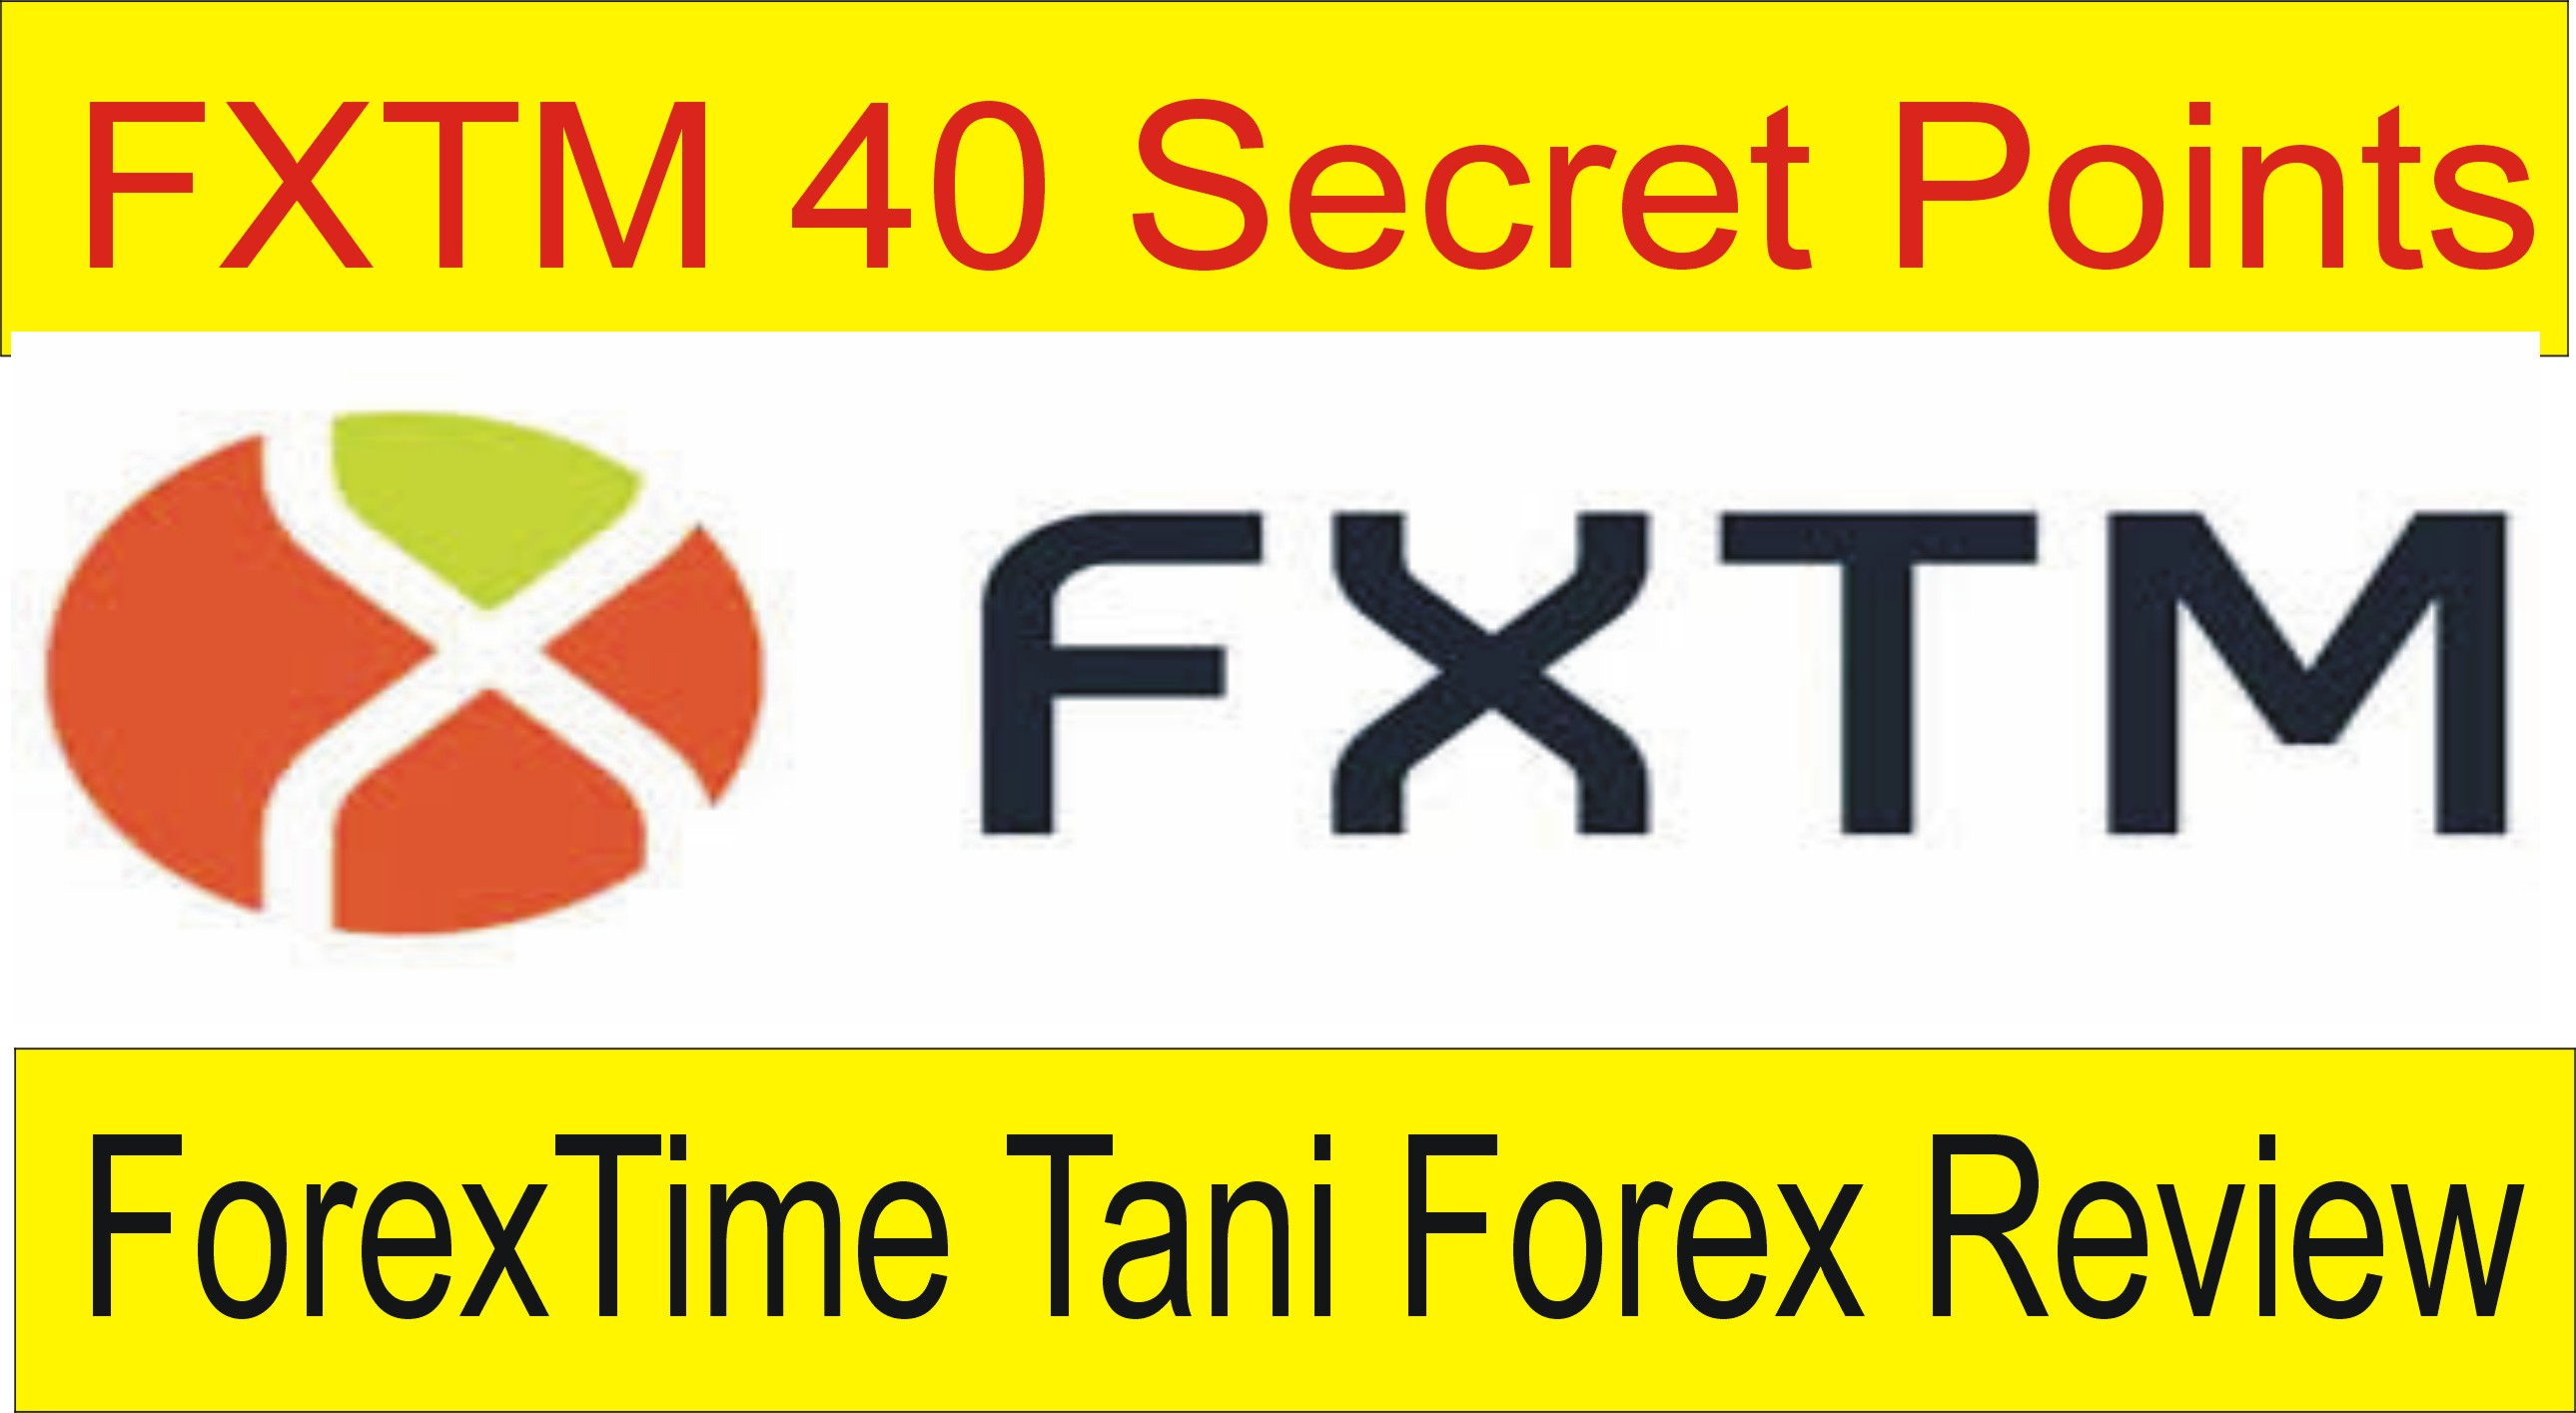 FXTM Trading Broker Review | Forextime 40 Secret Points - Tani Forex